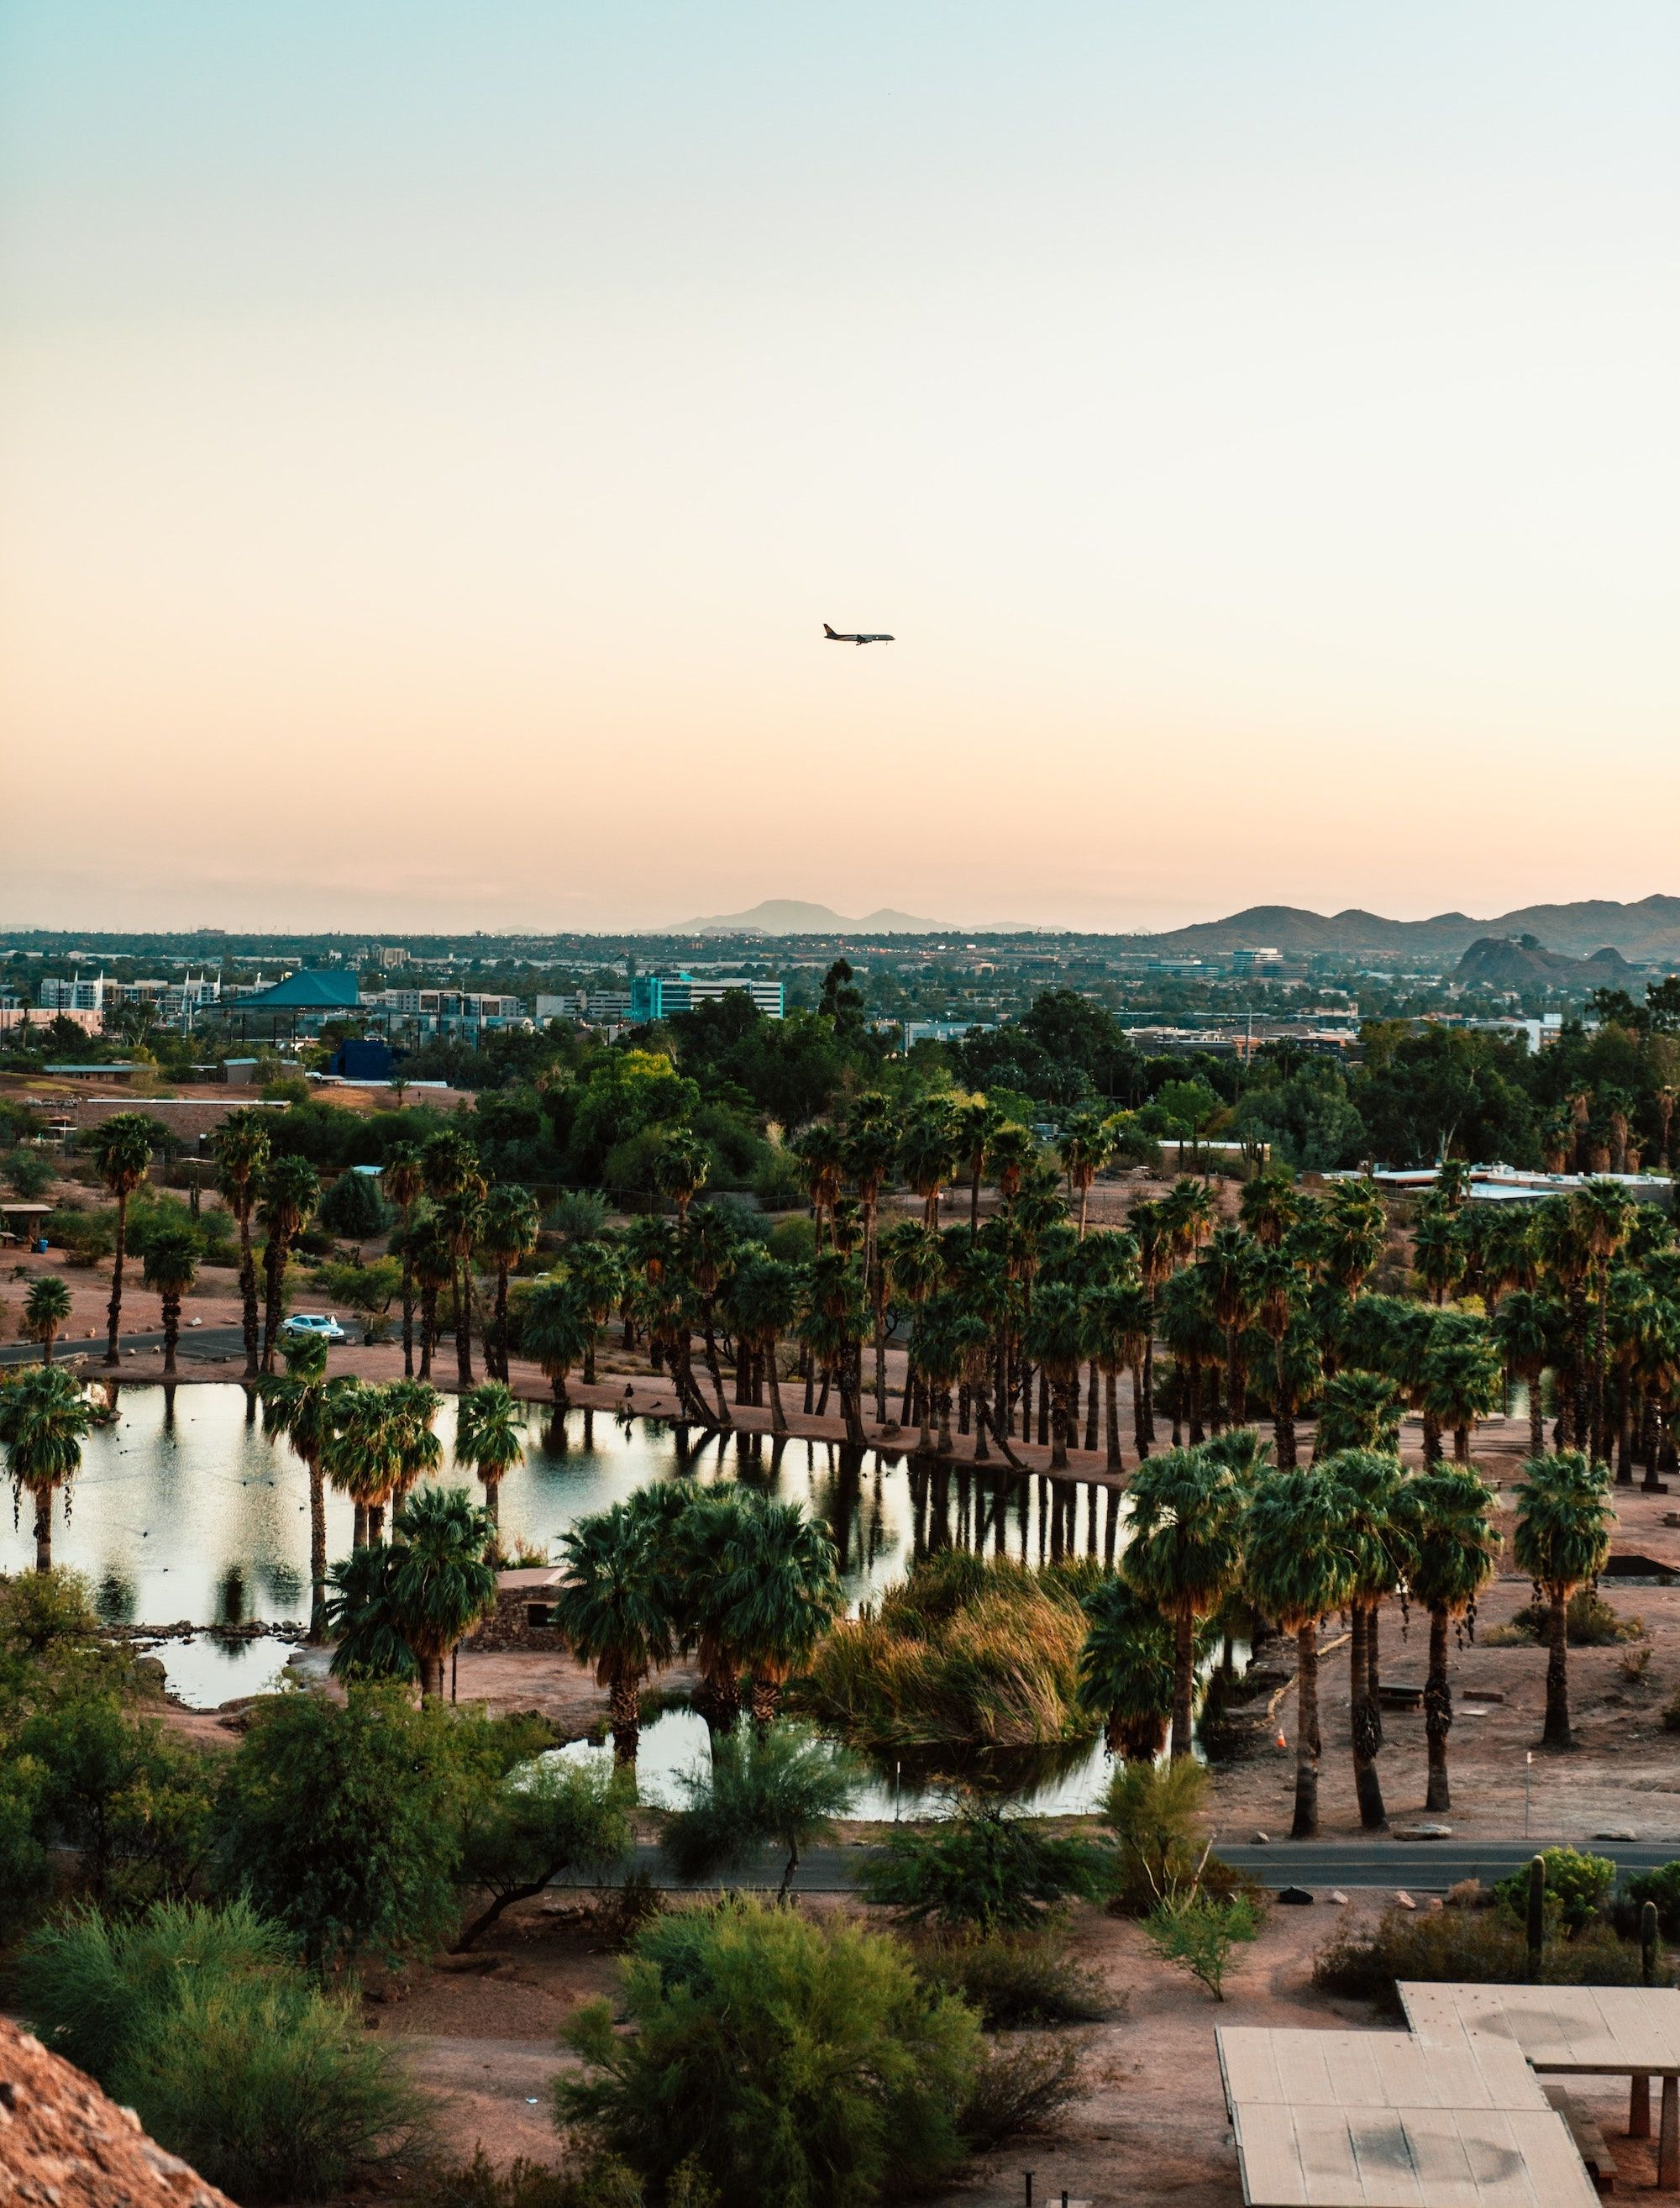 plane flying over palm trees and small body of water_best corporate retreat destinations_flok